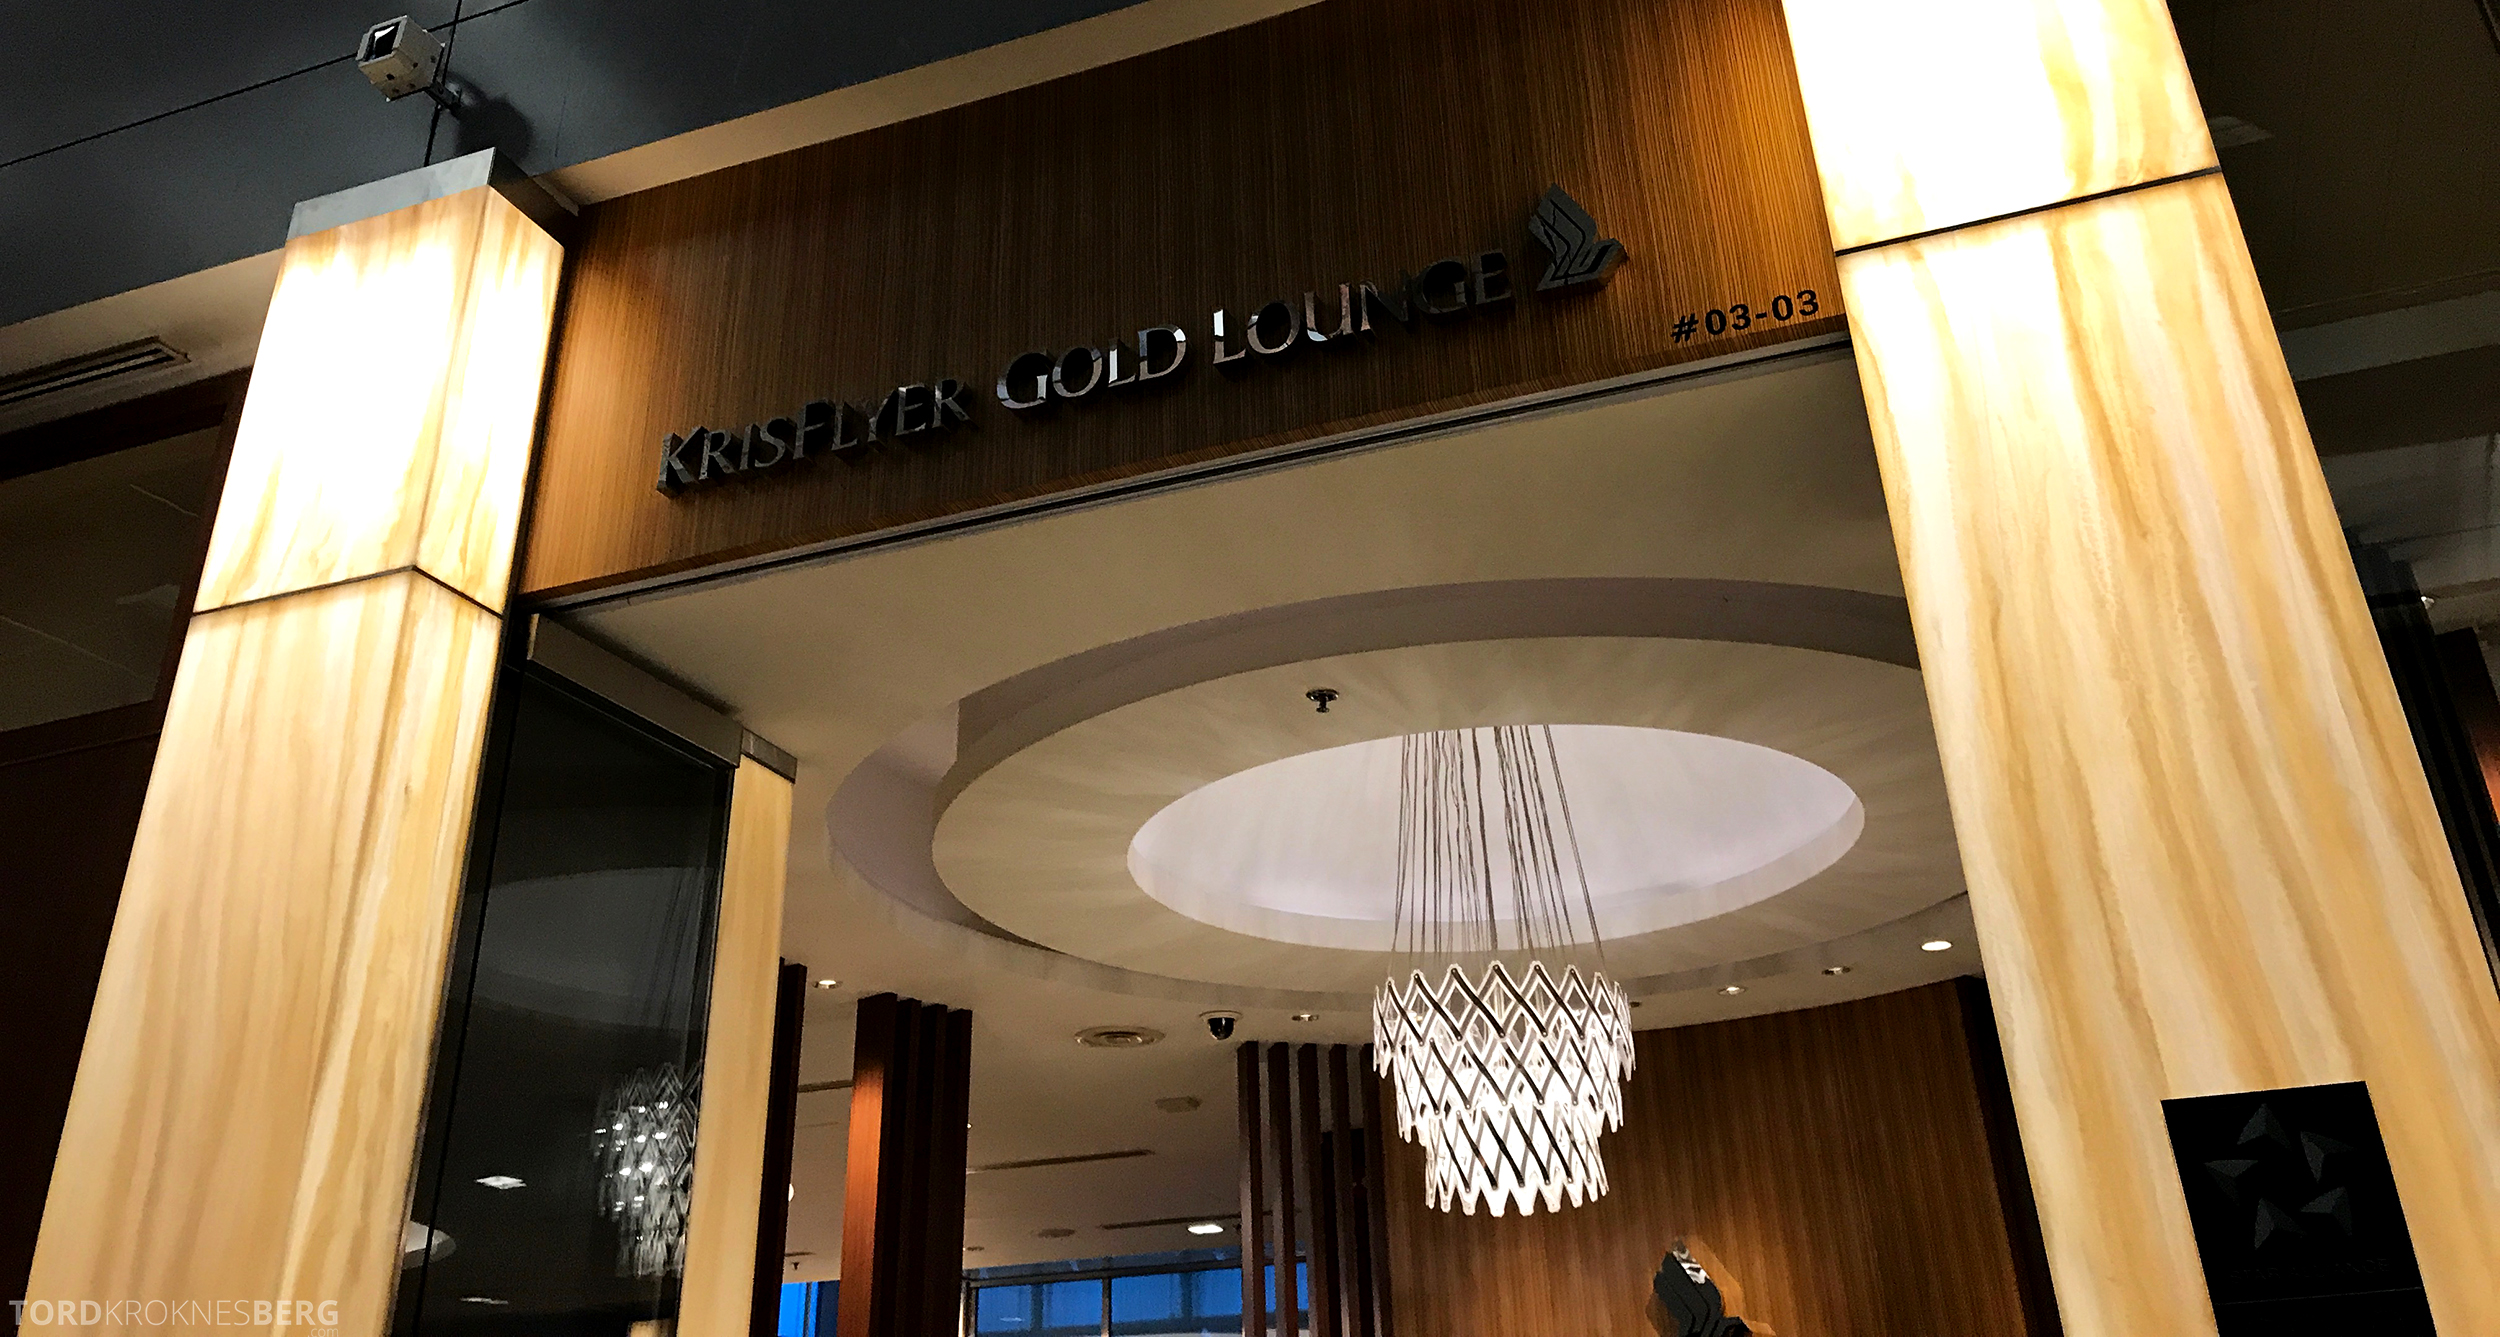 Singapore Airlines SilverKris Lounge gullkort